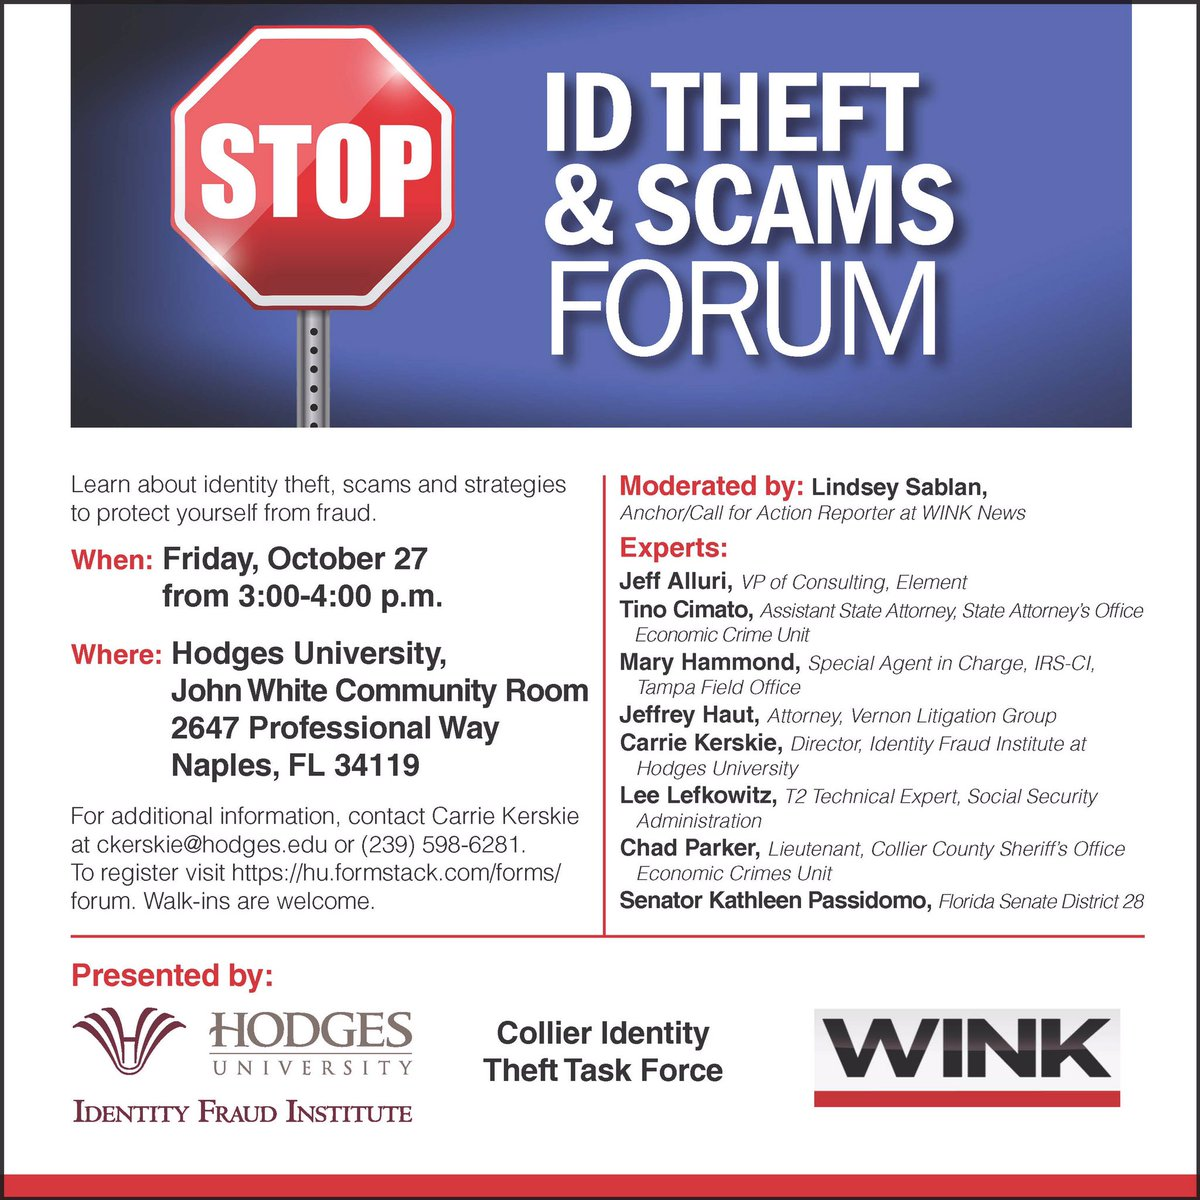 test Twitter Media - Free ID theft and scams forum 10/27/17. https://t.co/BVJCc5xnBp